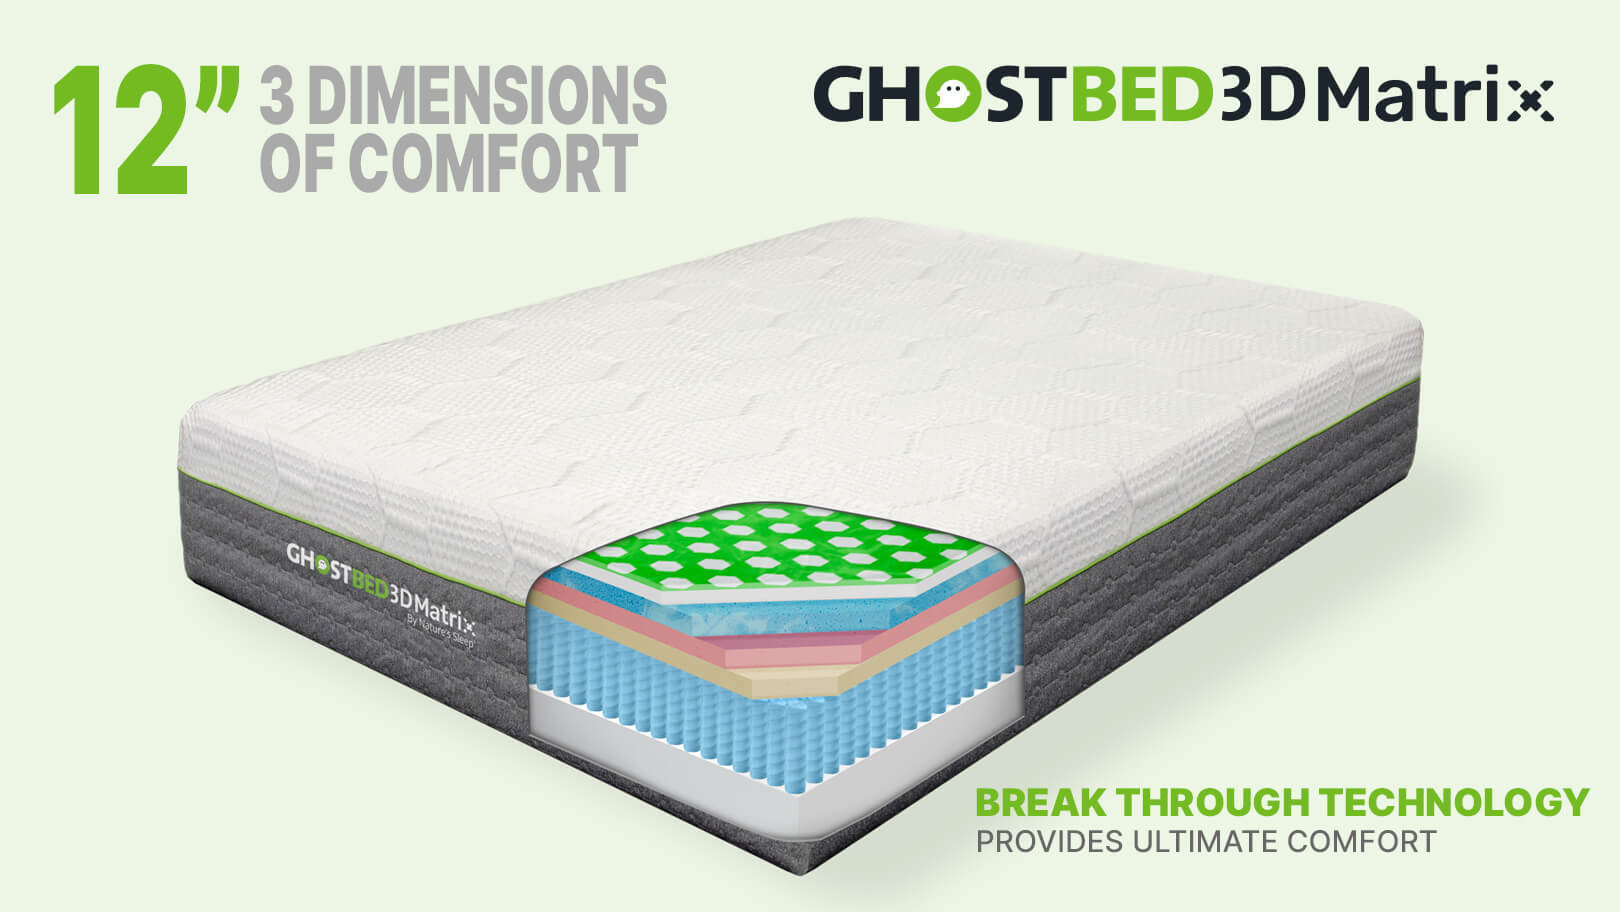 GhostBed 3D Matrix